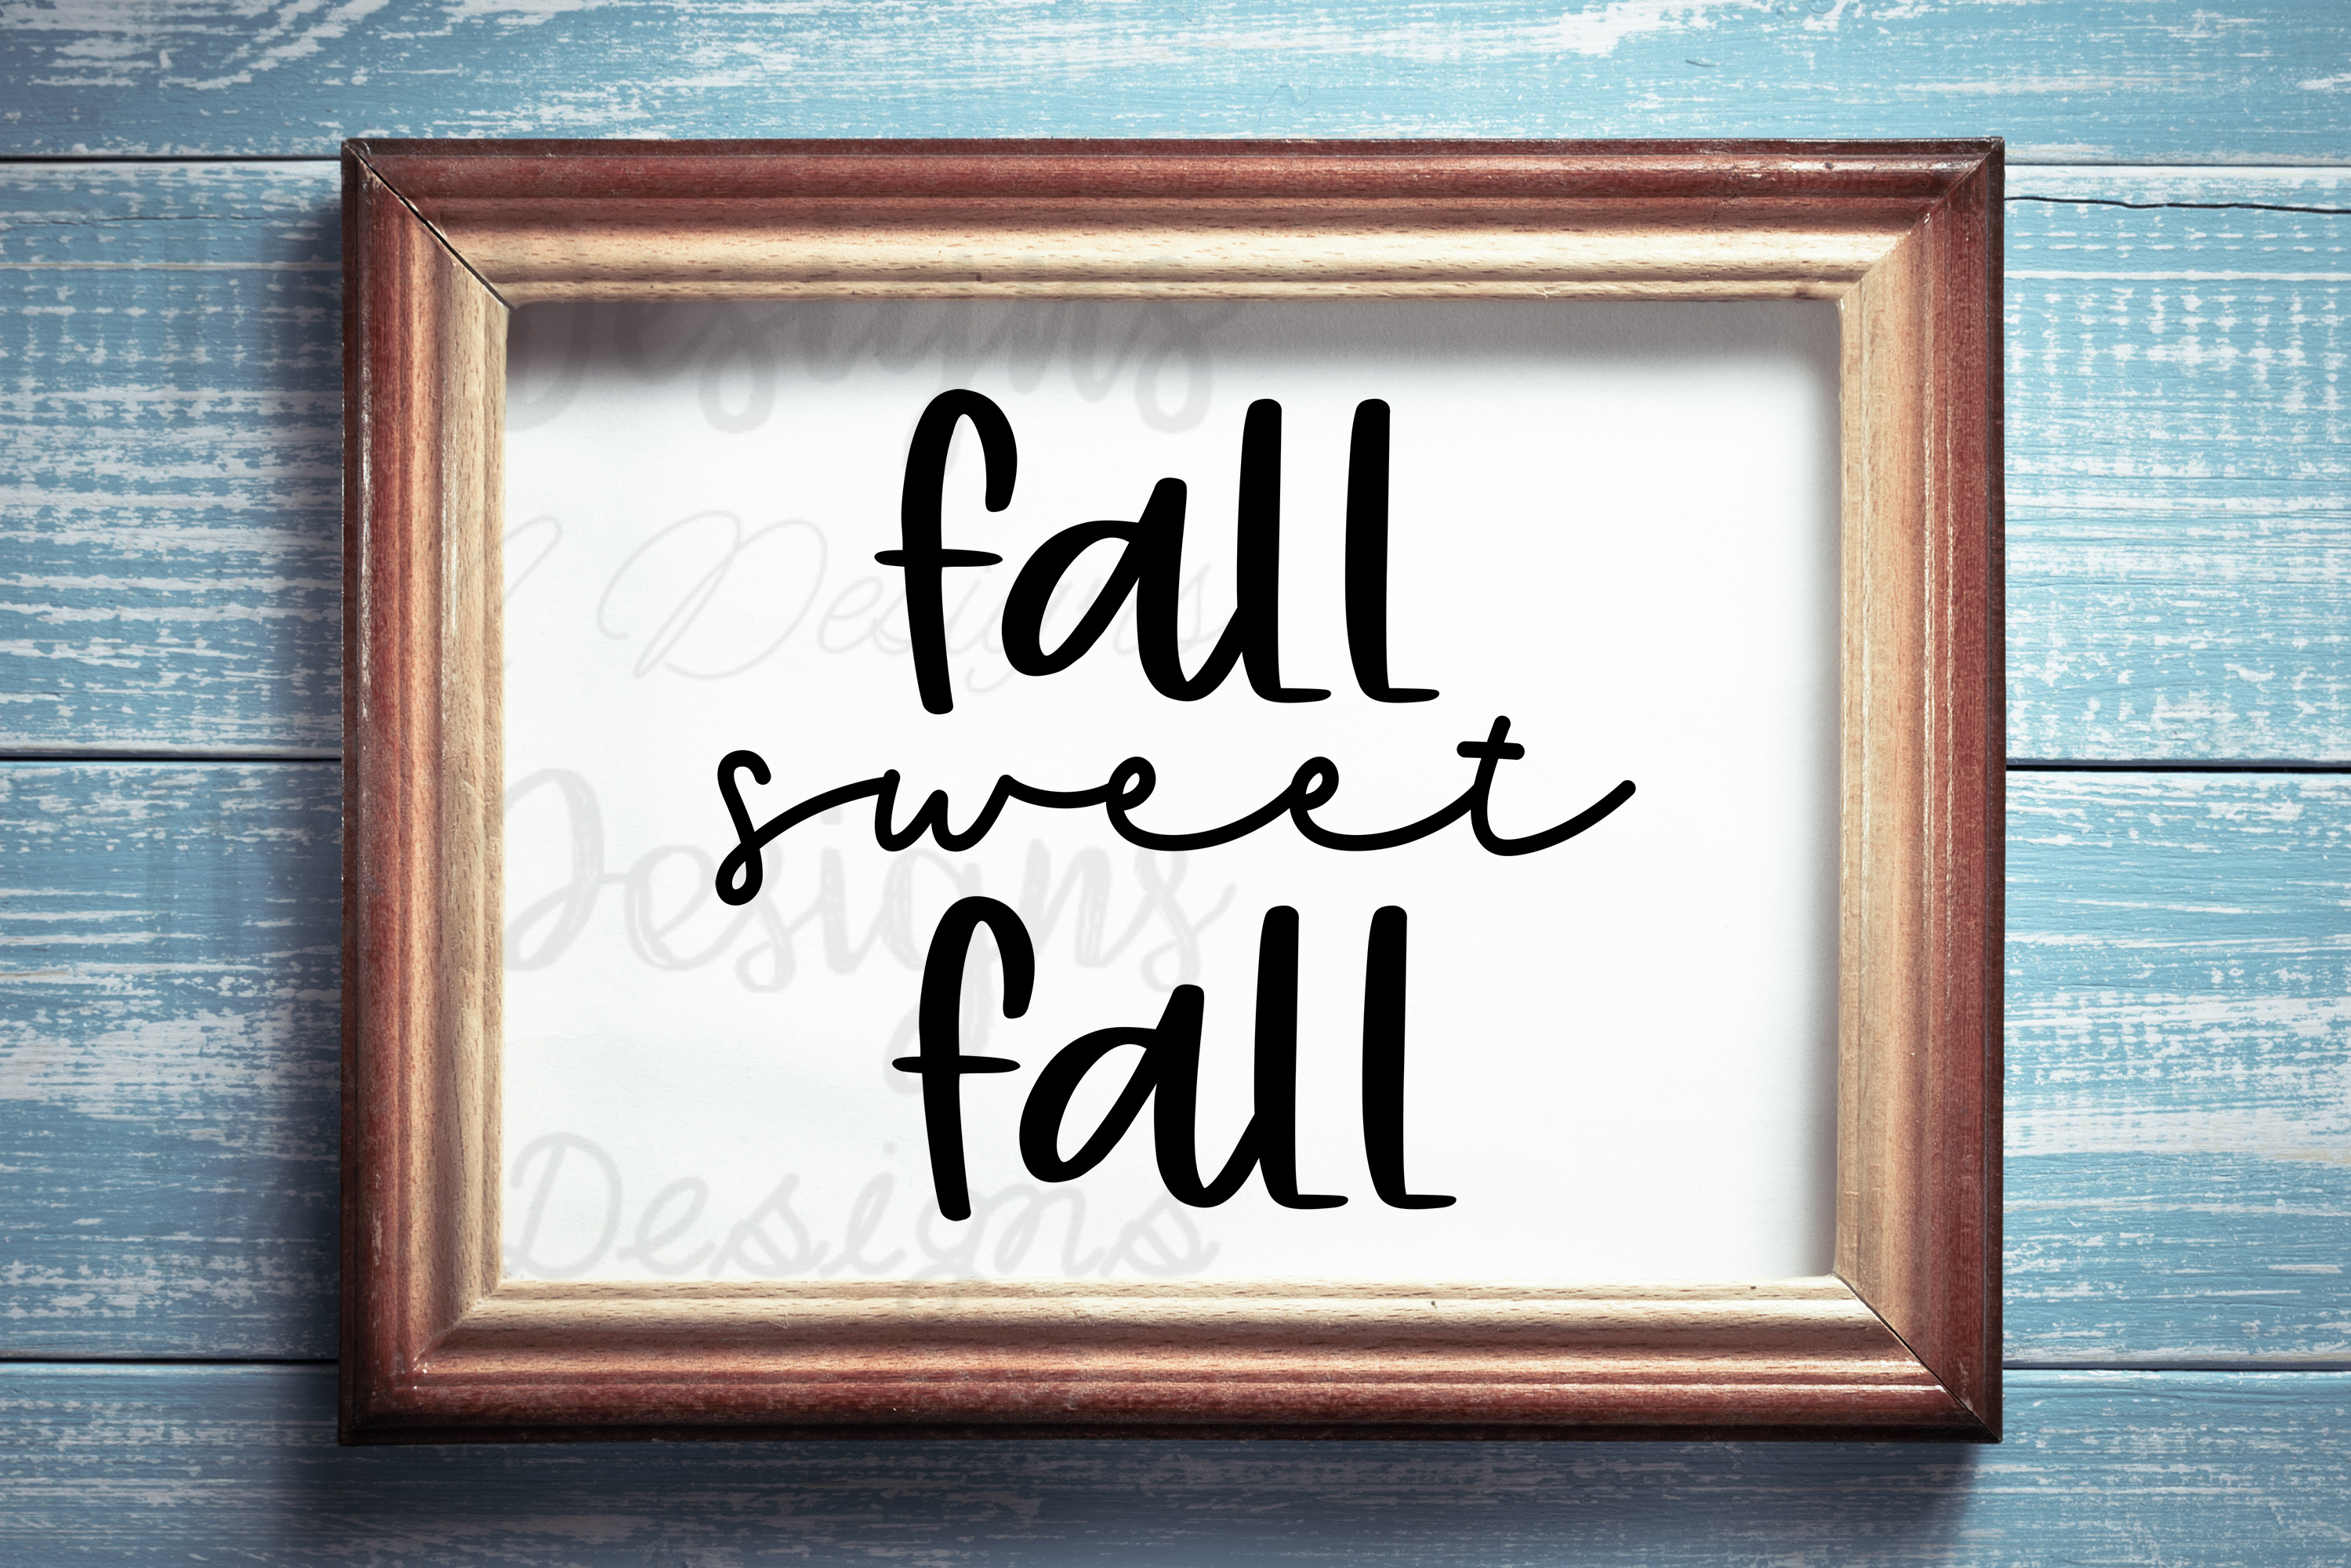 Fall Sweet Fall SVG example image 1